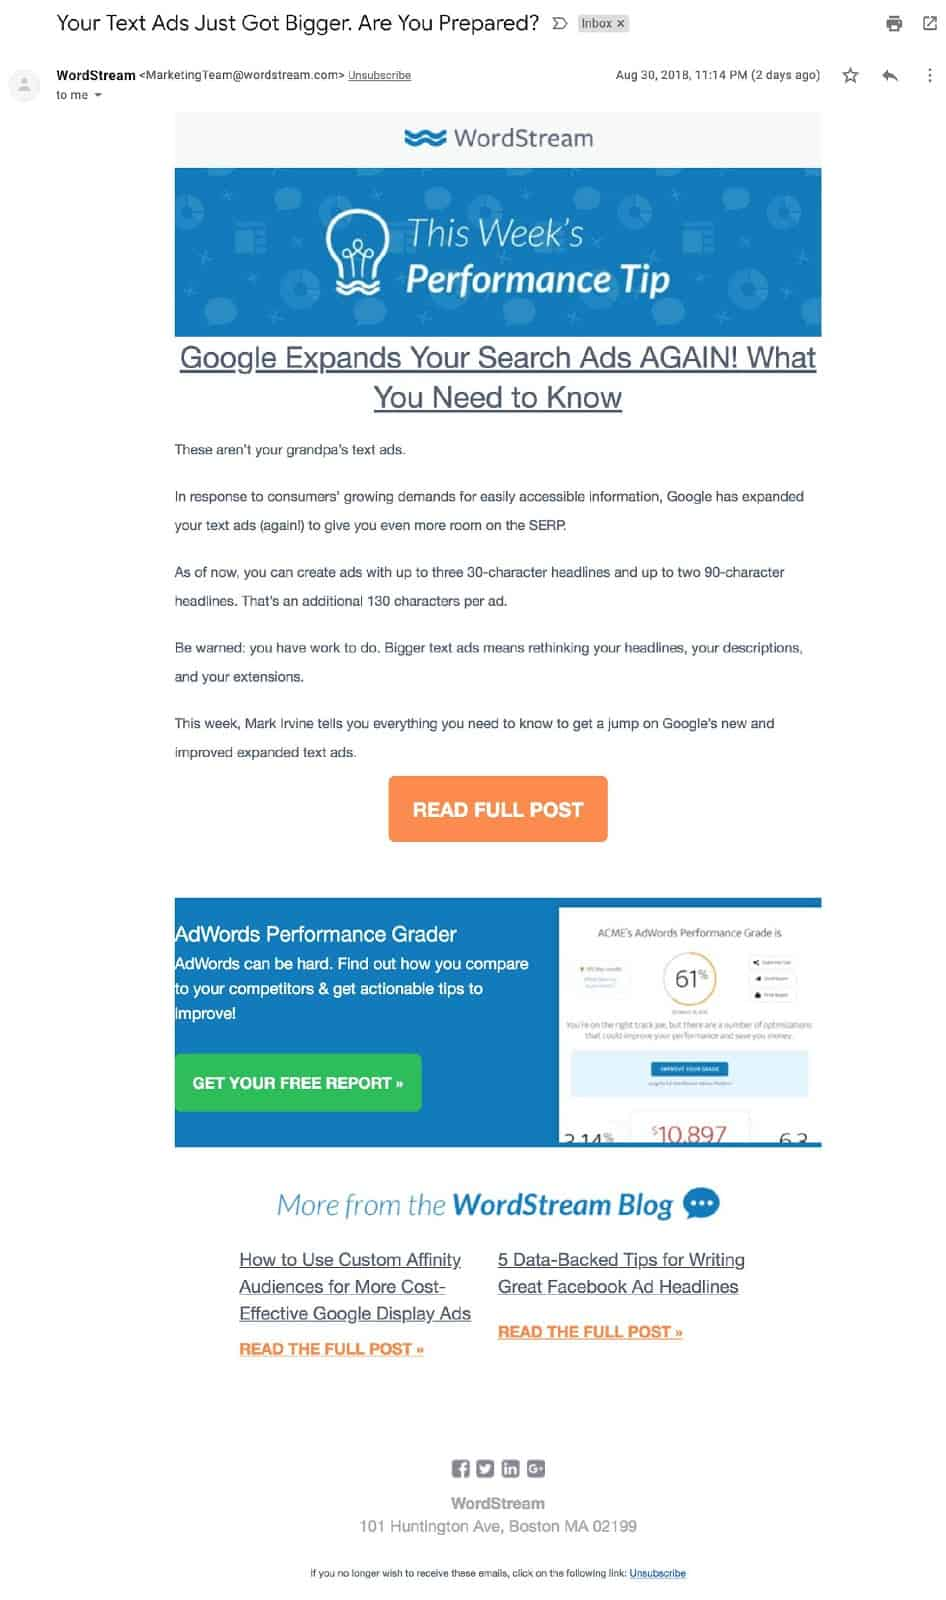 email marketing tips - wordstream